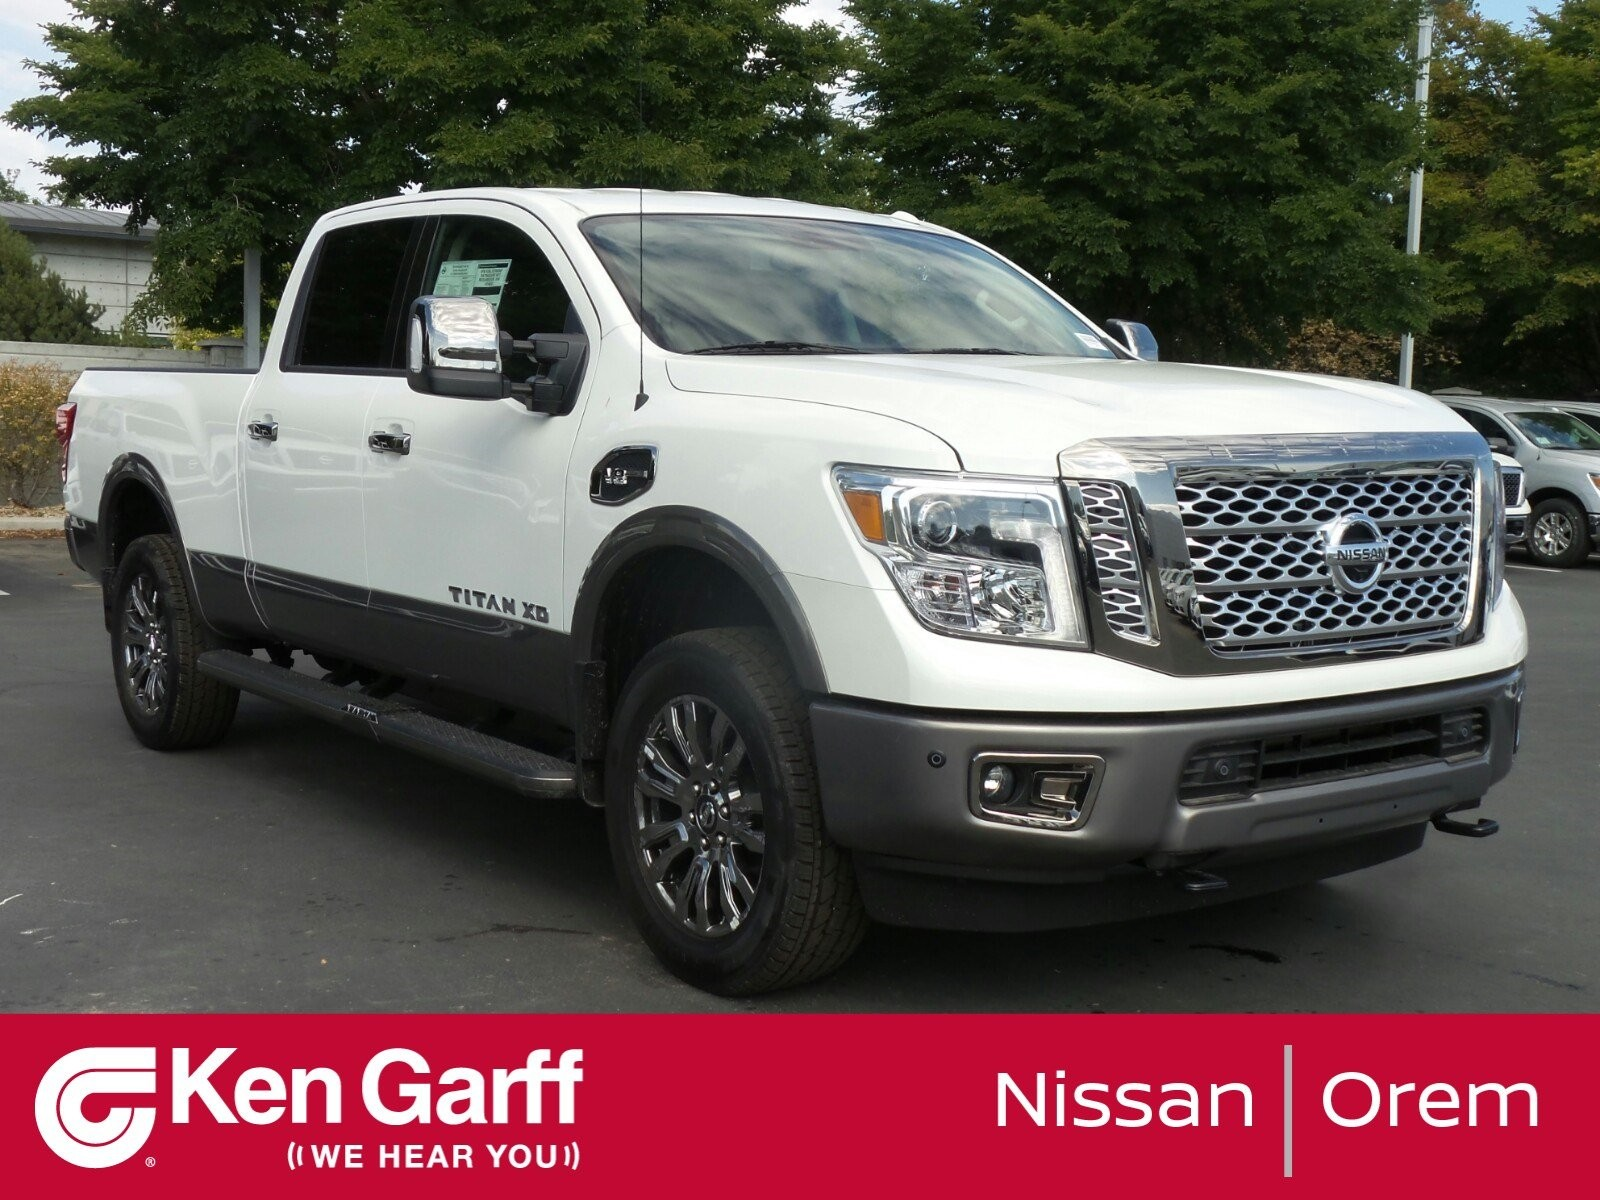 2006 Nissan Titan Parts Diagram New 2018 Nissan Titan Xd Platinum Reserve Crew Cab Pickup 2n Of 2006 Nissan Titan Parts Diagram New 2018 Nissan Titan Xd Pro 4x Crew Cab Pickup In Riverdale